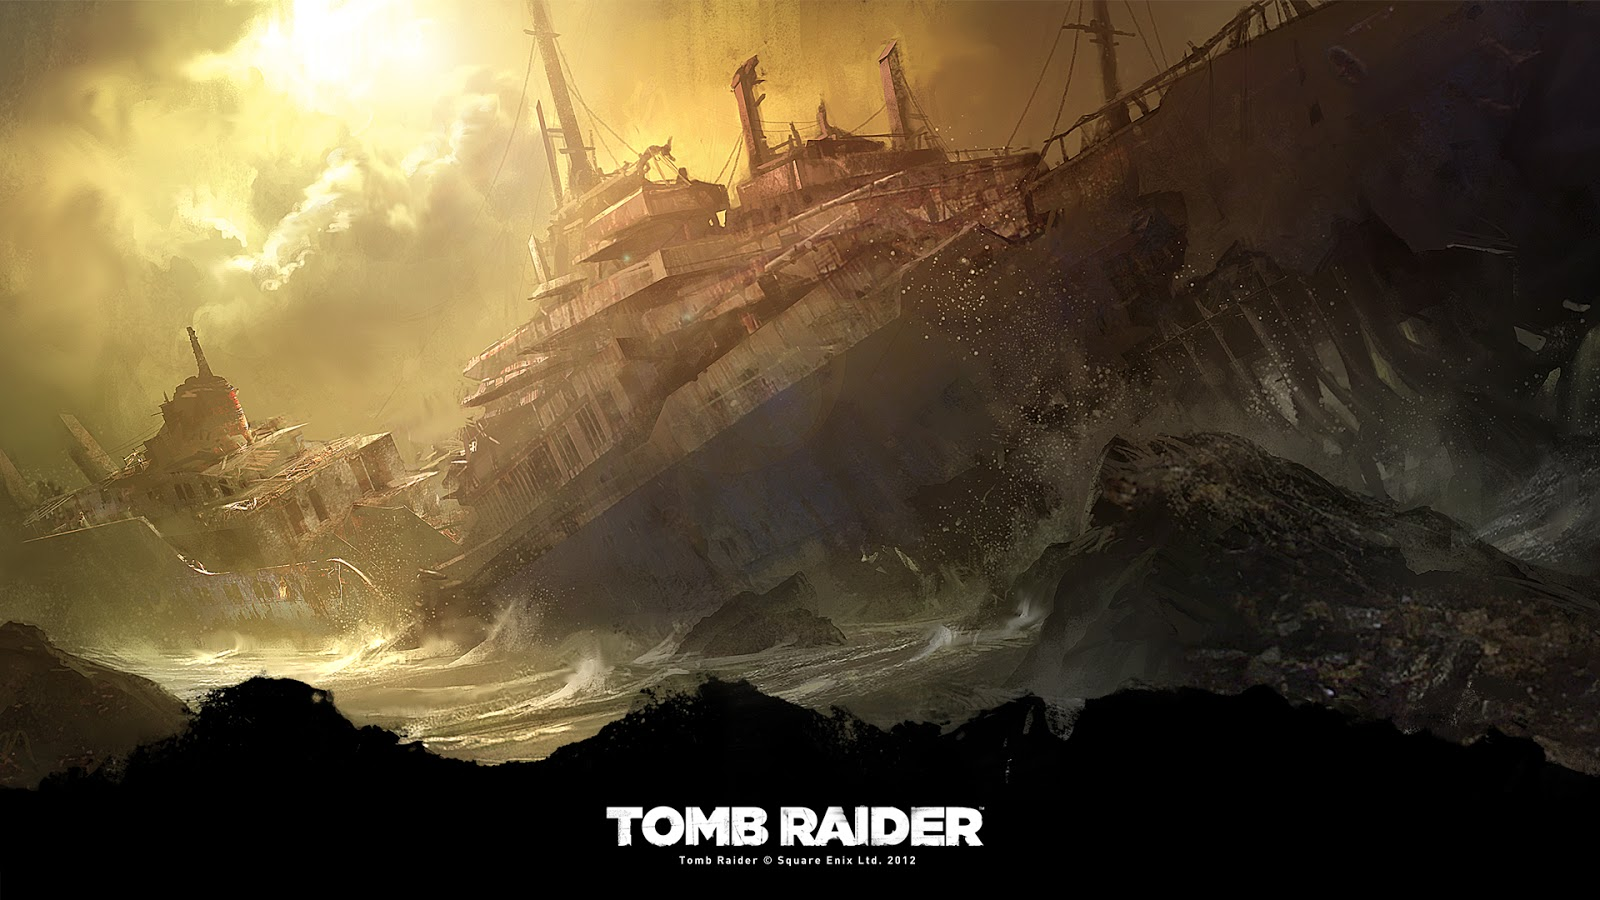 Tomb Raider HD & Widescreen Wallpaper 0.221660480450757